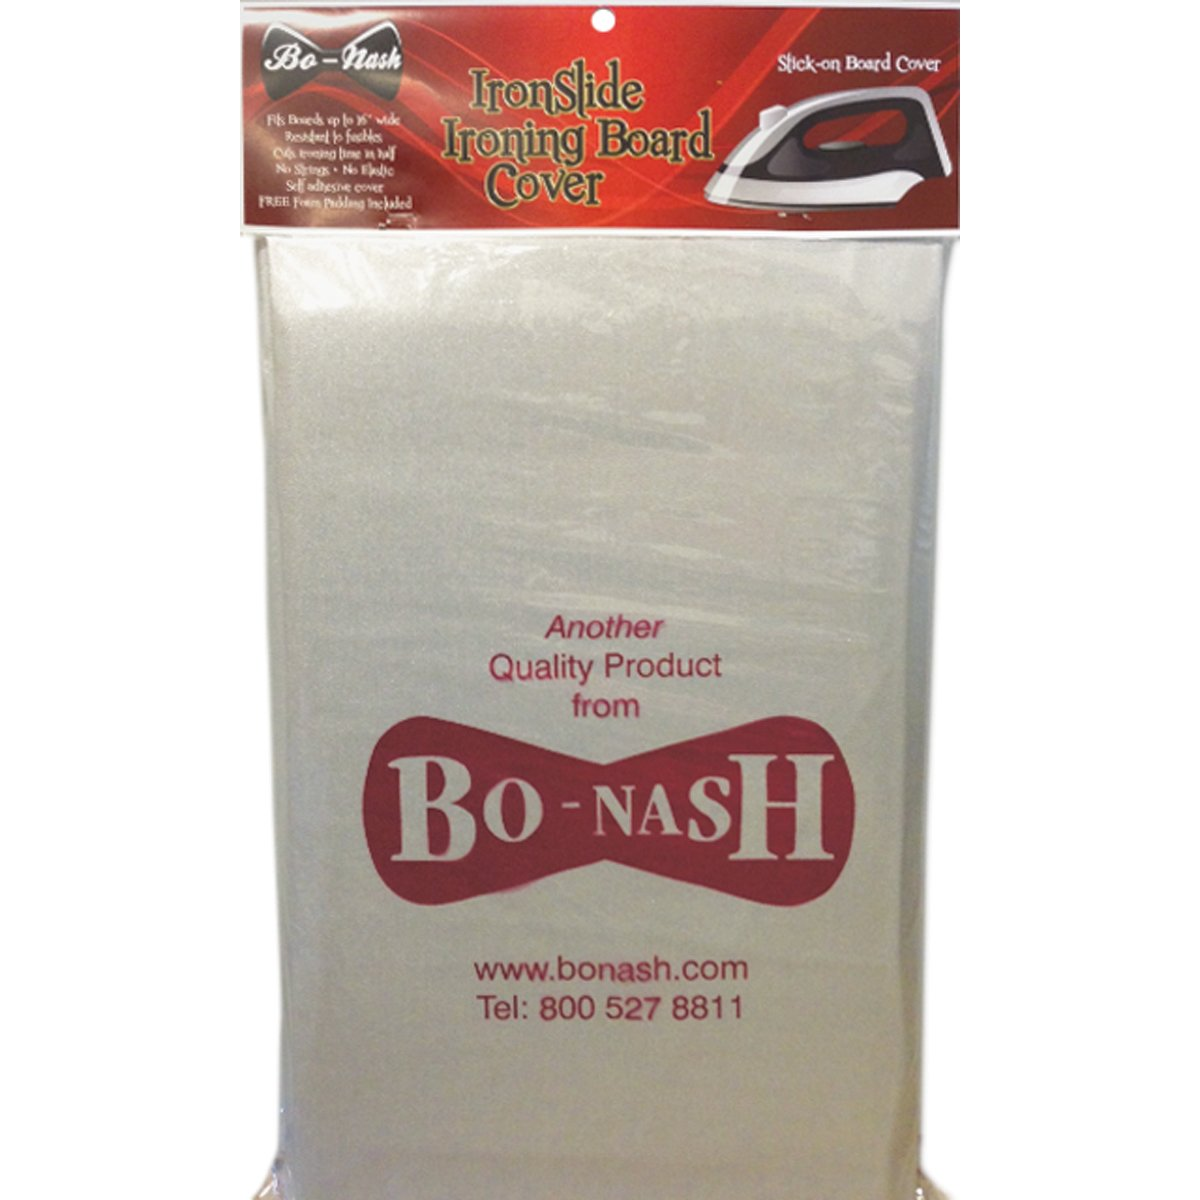 Bo-Nash 19-Inch-by-59-Inch IronSlide 2000 Ironing Board Cover